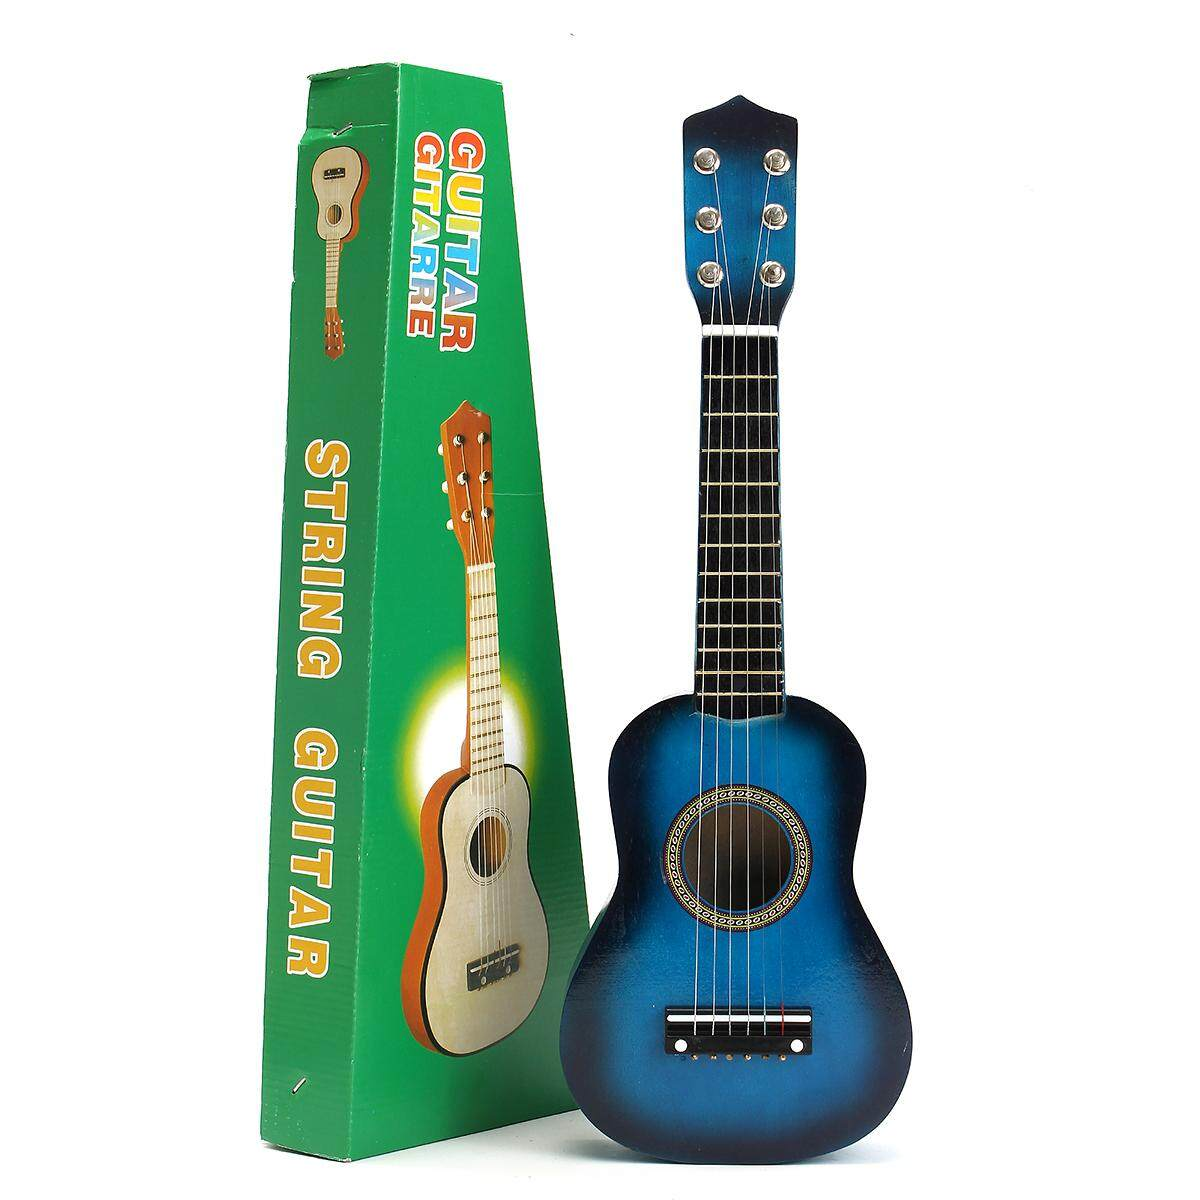 Acoustic Guitars For The Best Price In Malaysia Fret Gitar Jumbo 21 Beginner Kids Guitar 6 String Musical Instrument Children